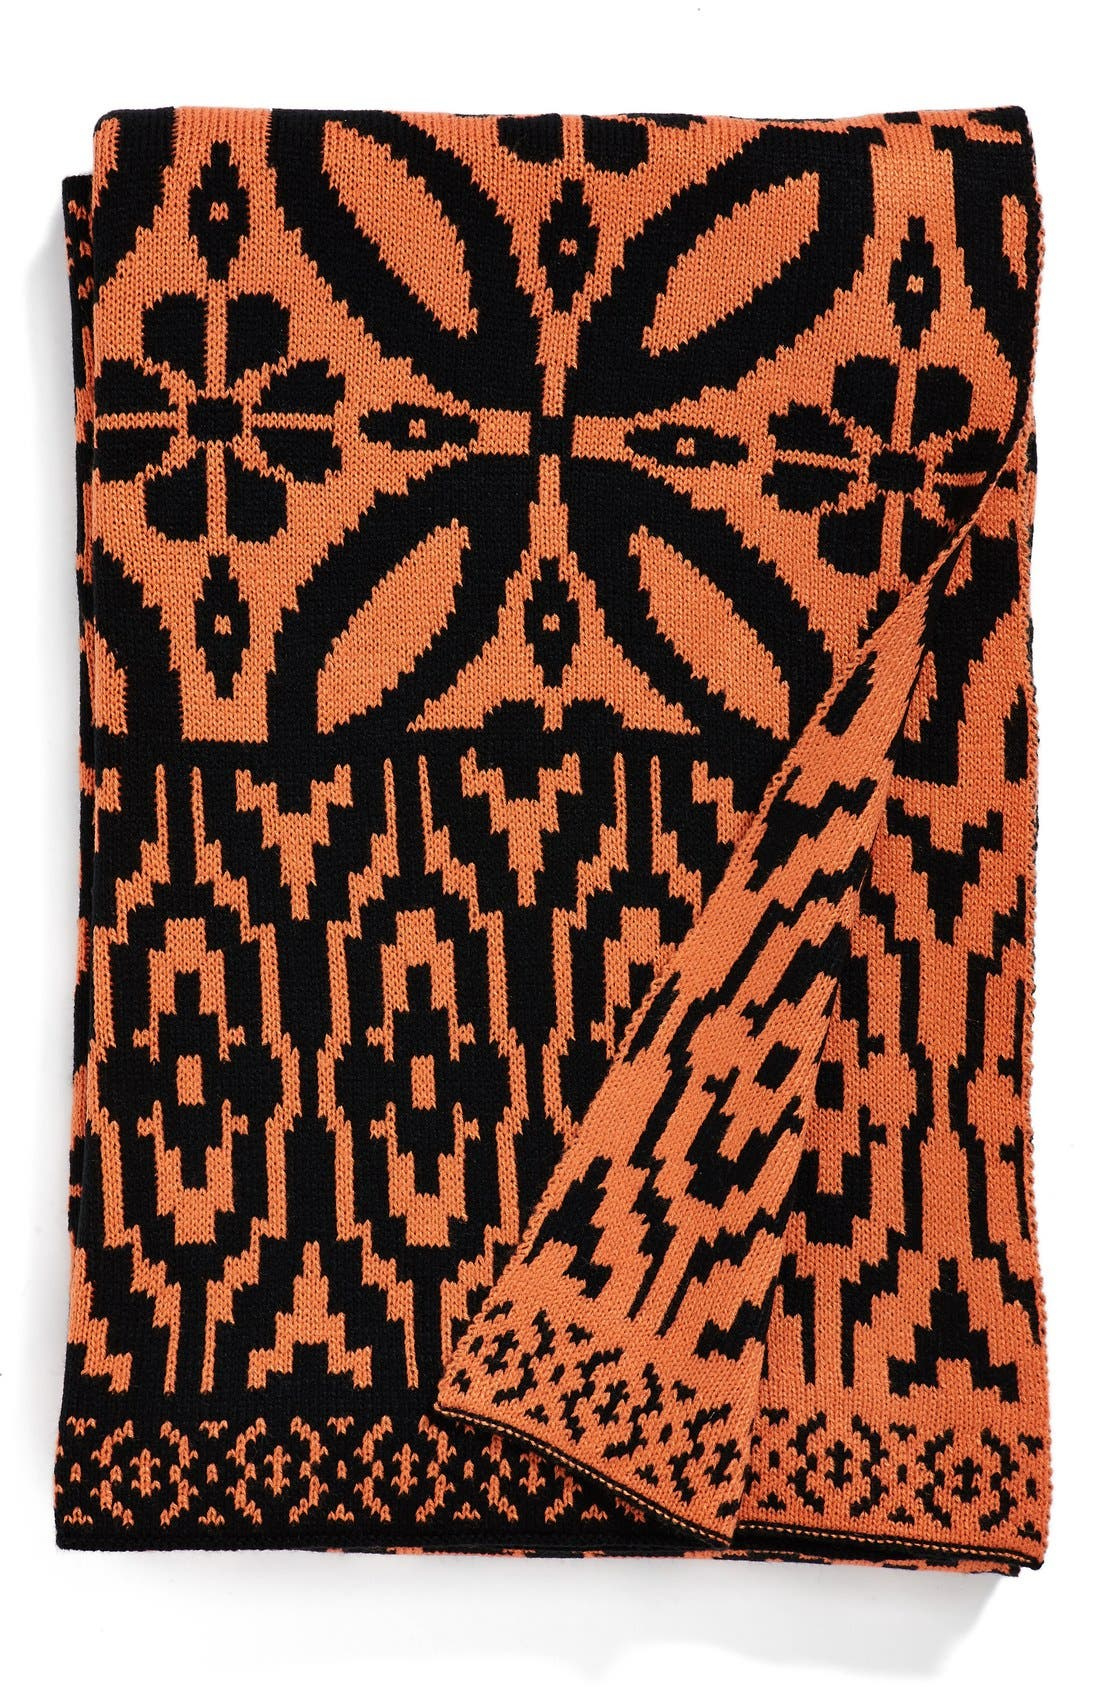 Alternate Image 1 Selected - Nordstrom at Home 'Tiles' Knit Throw